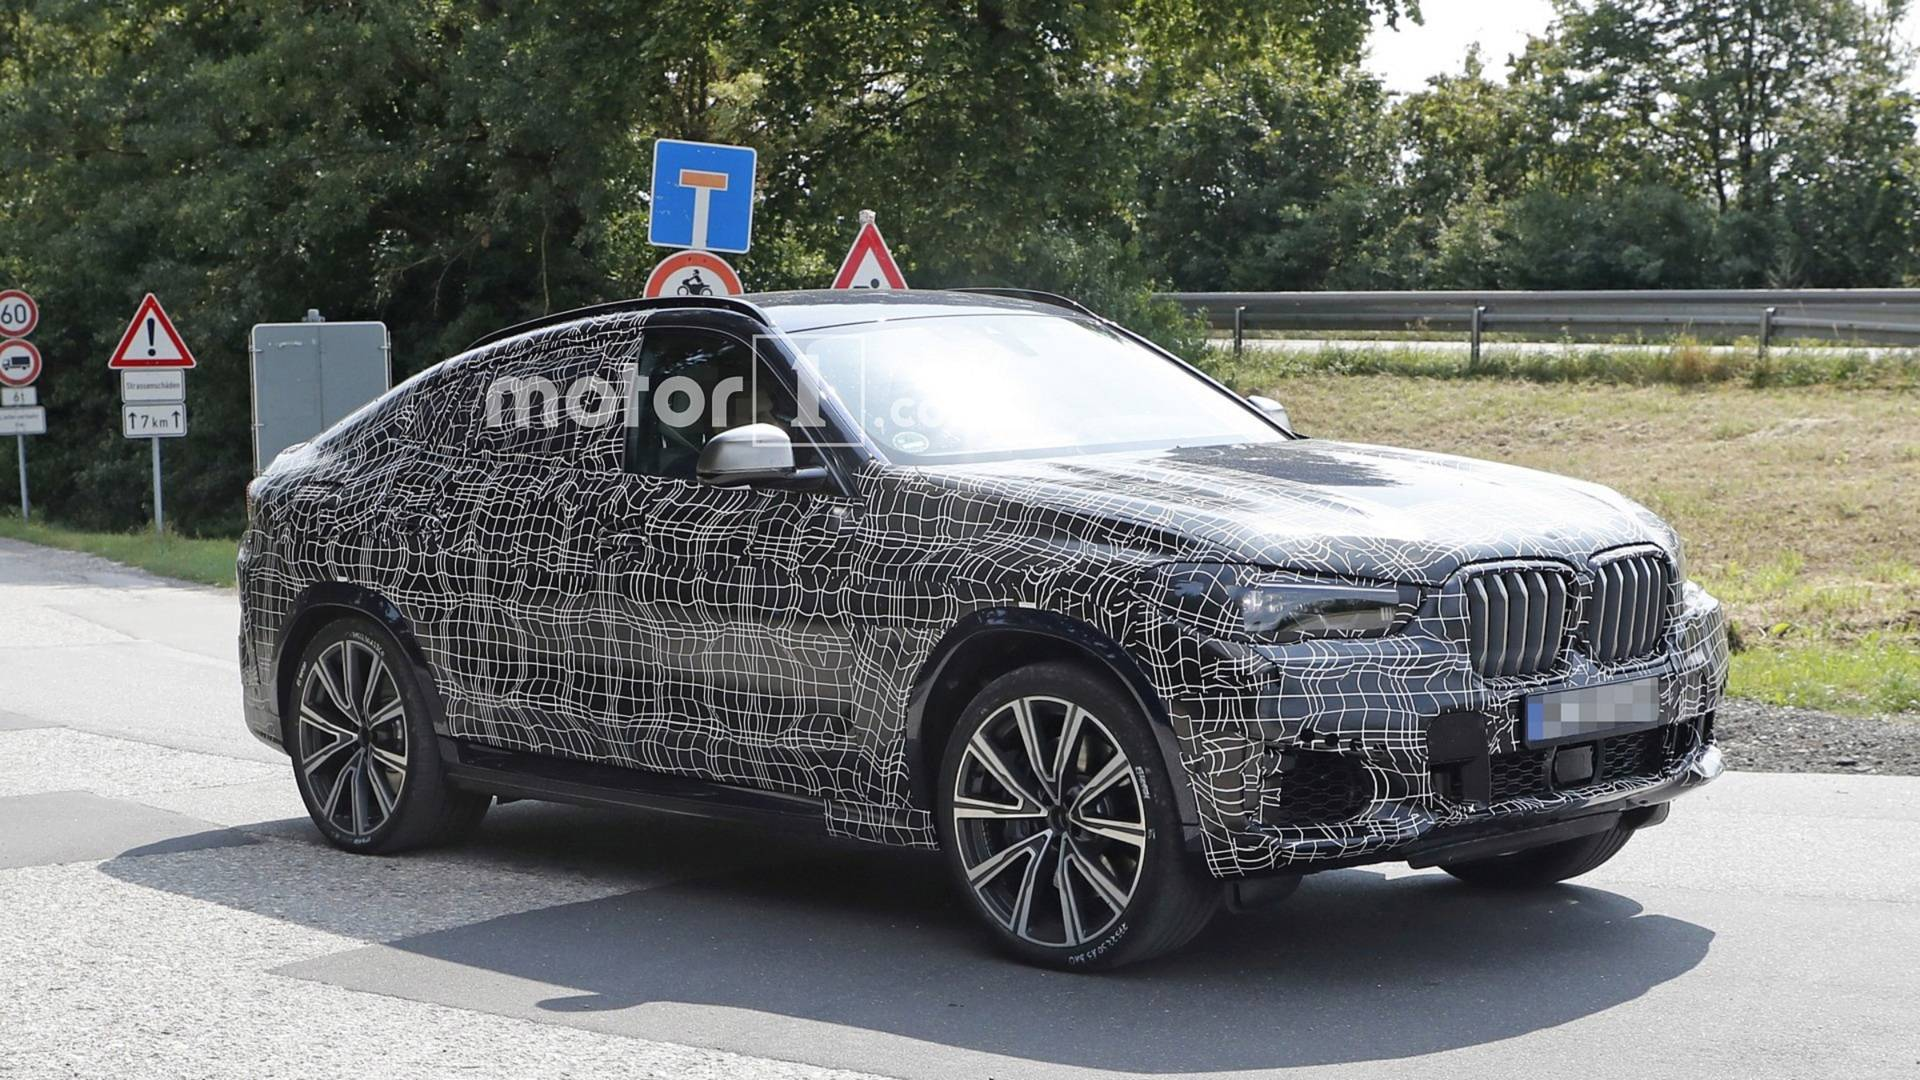 2020 Bmw X6 Spied In Germany With Production Body And Lights